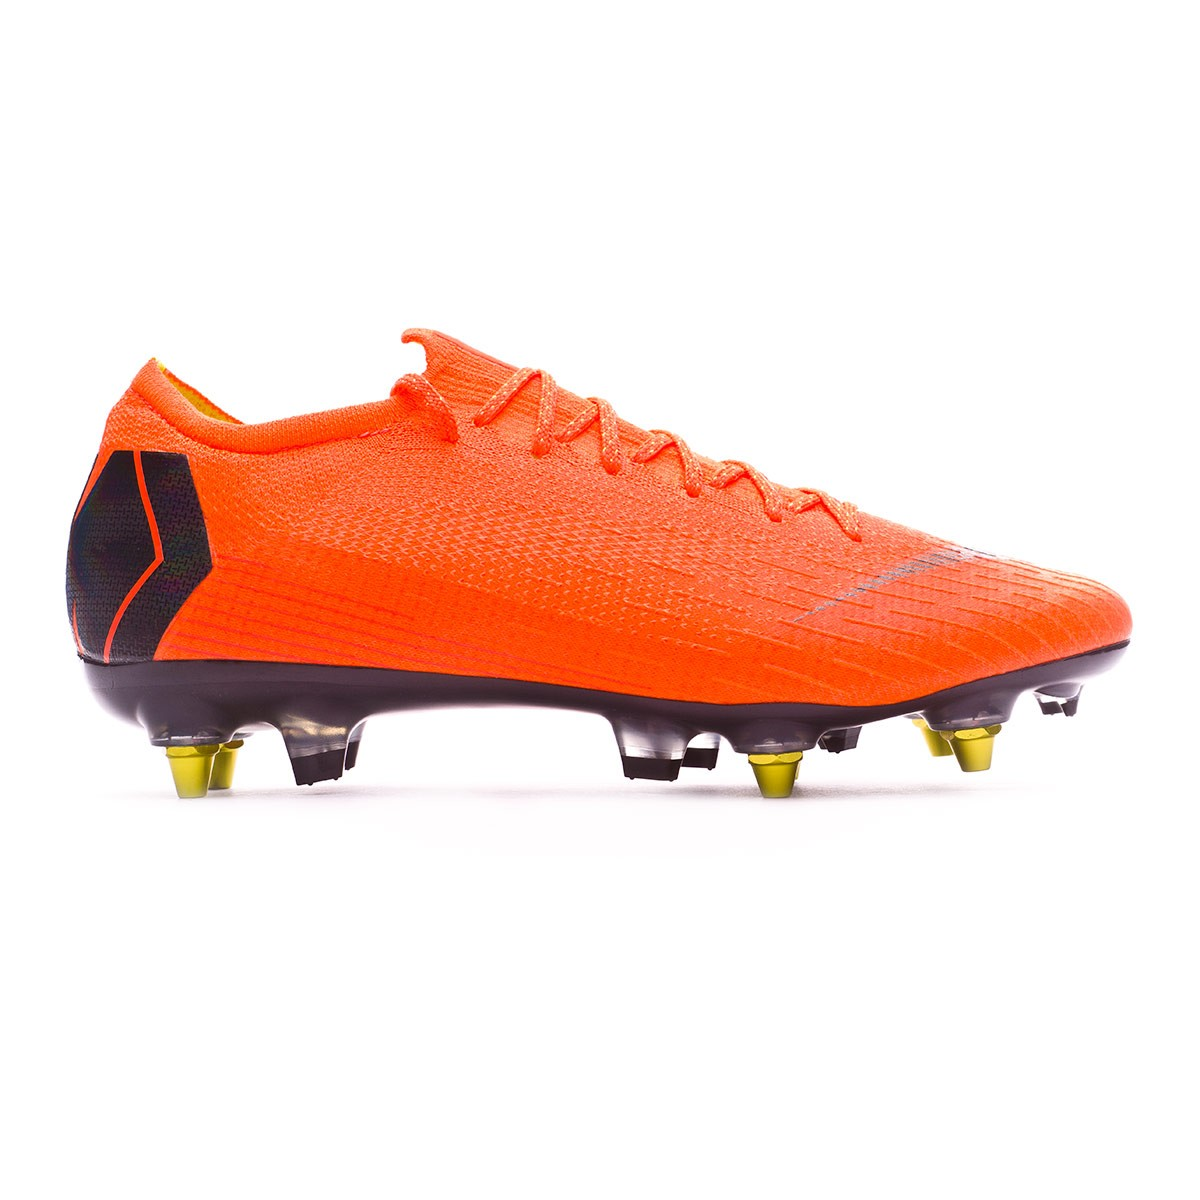 buy popular 9df20 56f4f Scarpe Nike Mercurial Vapor XII Elite SG-Pro Anti-Clog Total  orange-Black-Volt - Negozio di calcio Fútbol Emotion